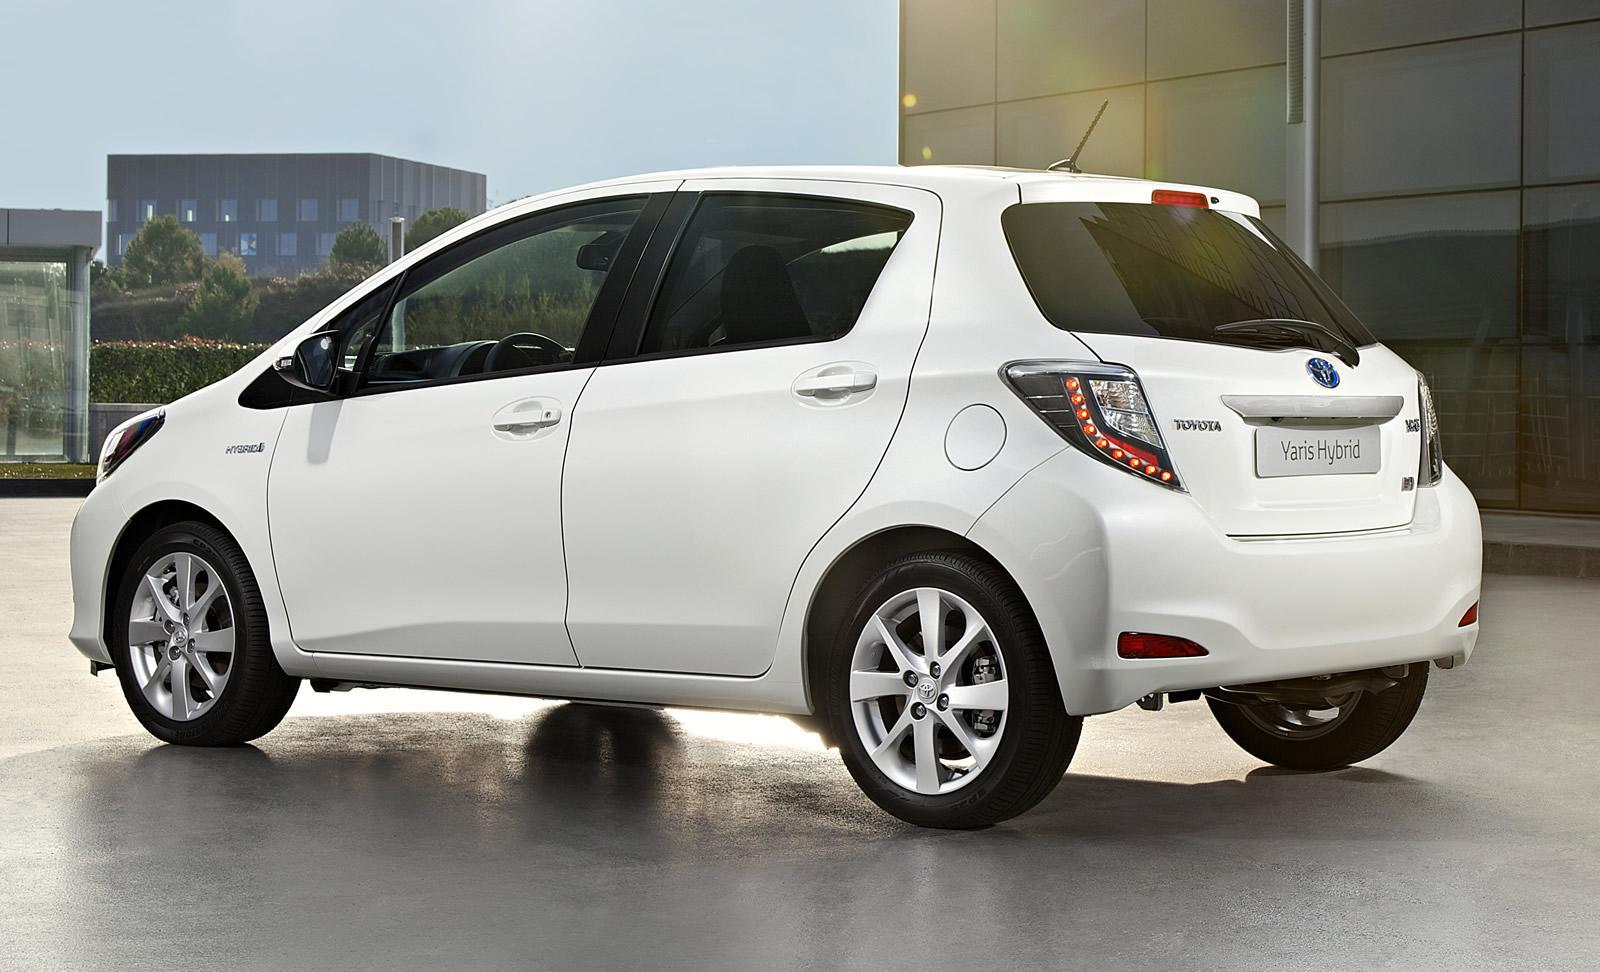 toyota yaris hybrid challeges the honda jazz hybrid car. Black Bedroom Furniture Sets. Home Design Ideas